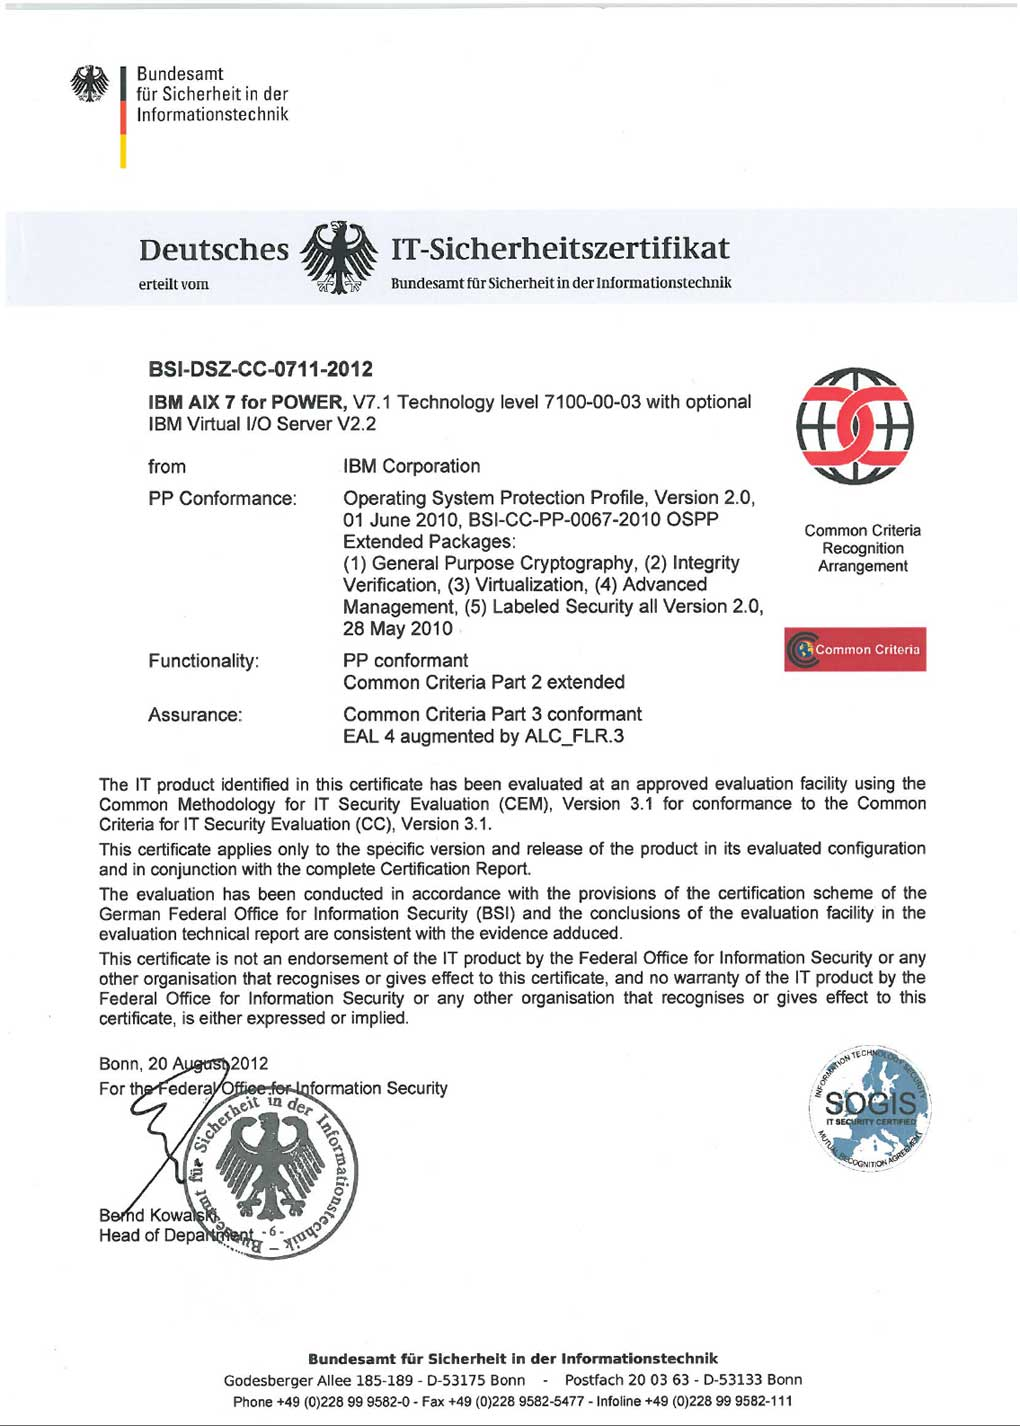 Aix 7 Receives Osppeal4 Common Criteria Security Certification